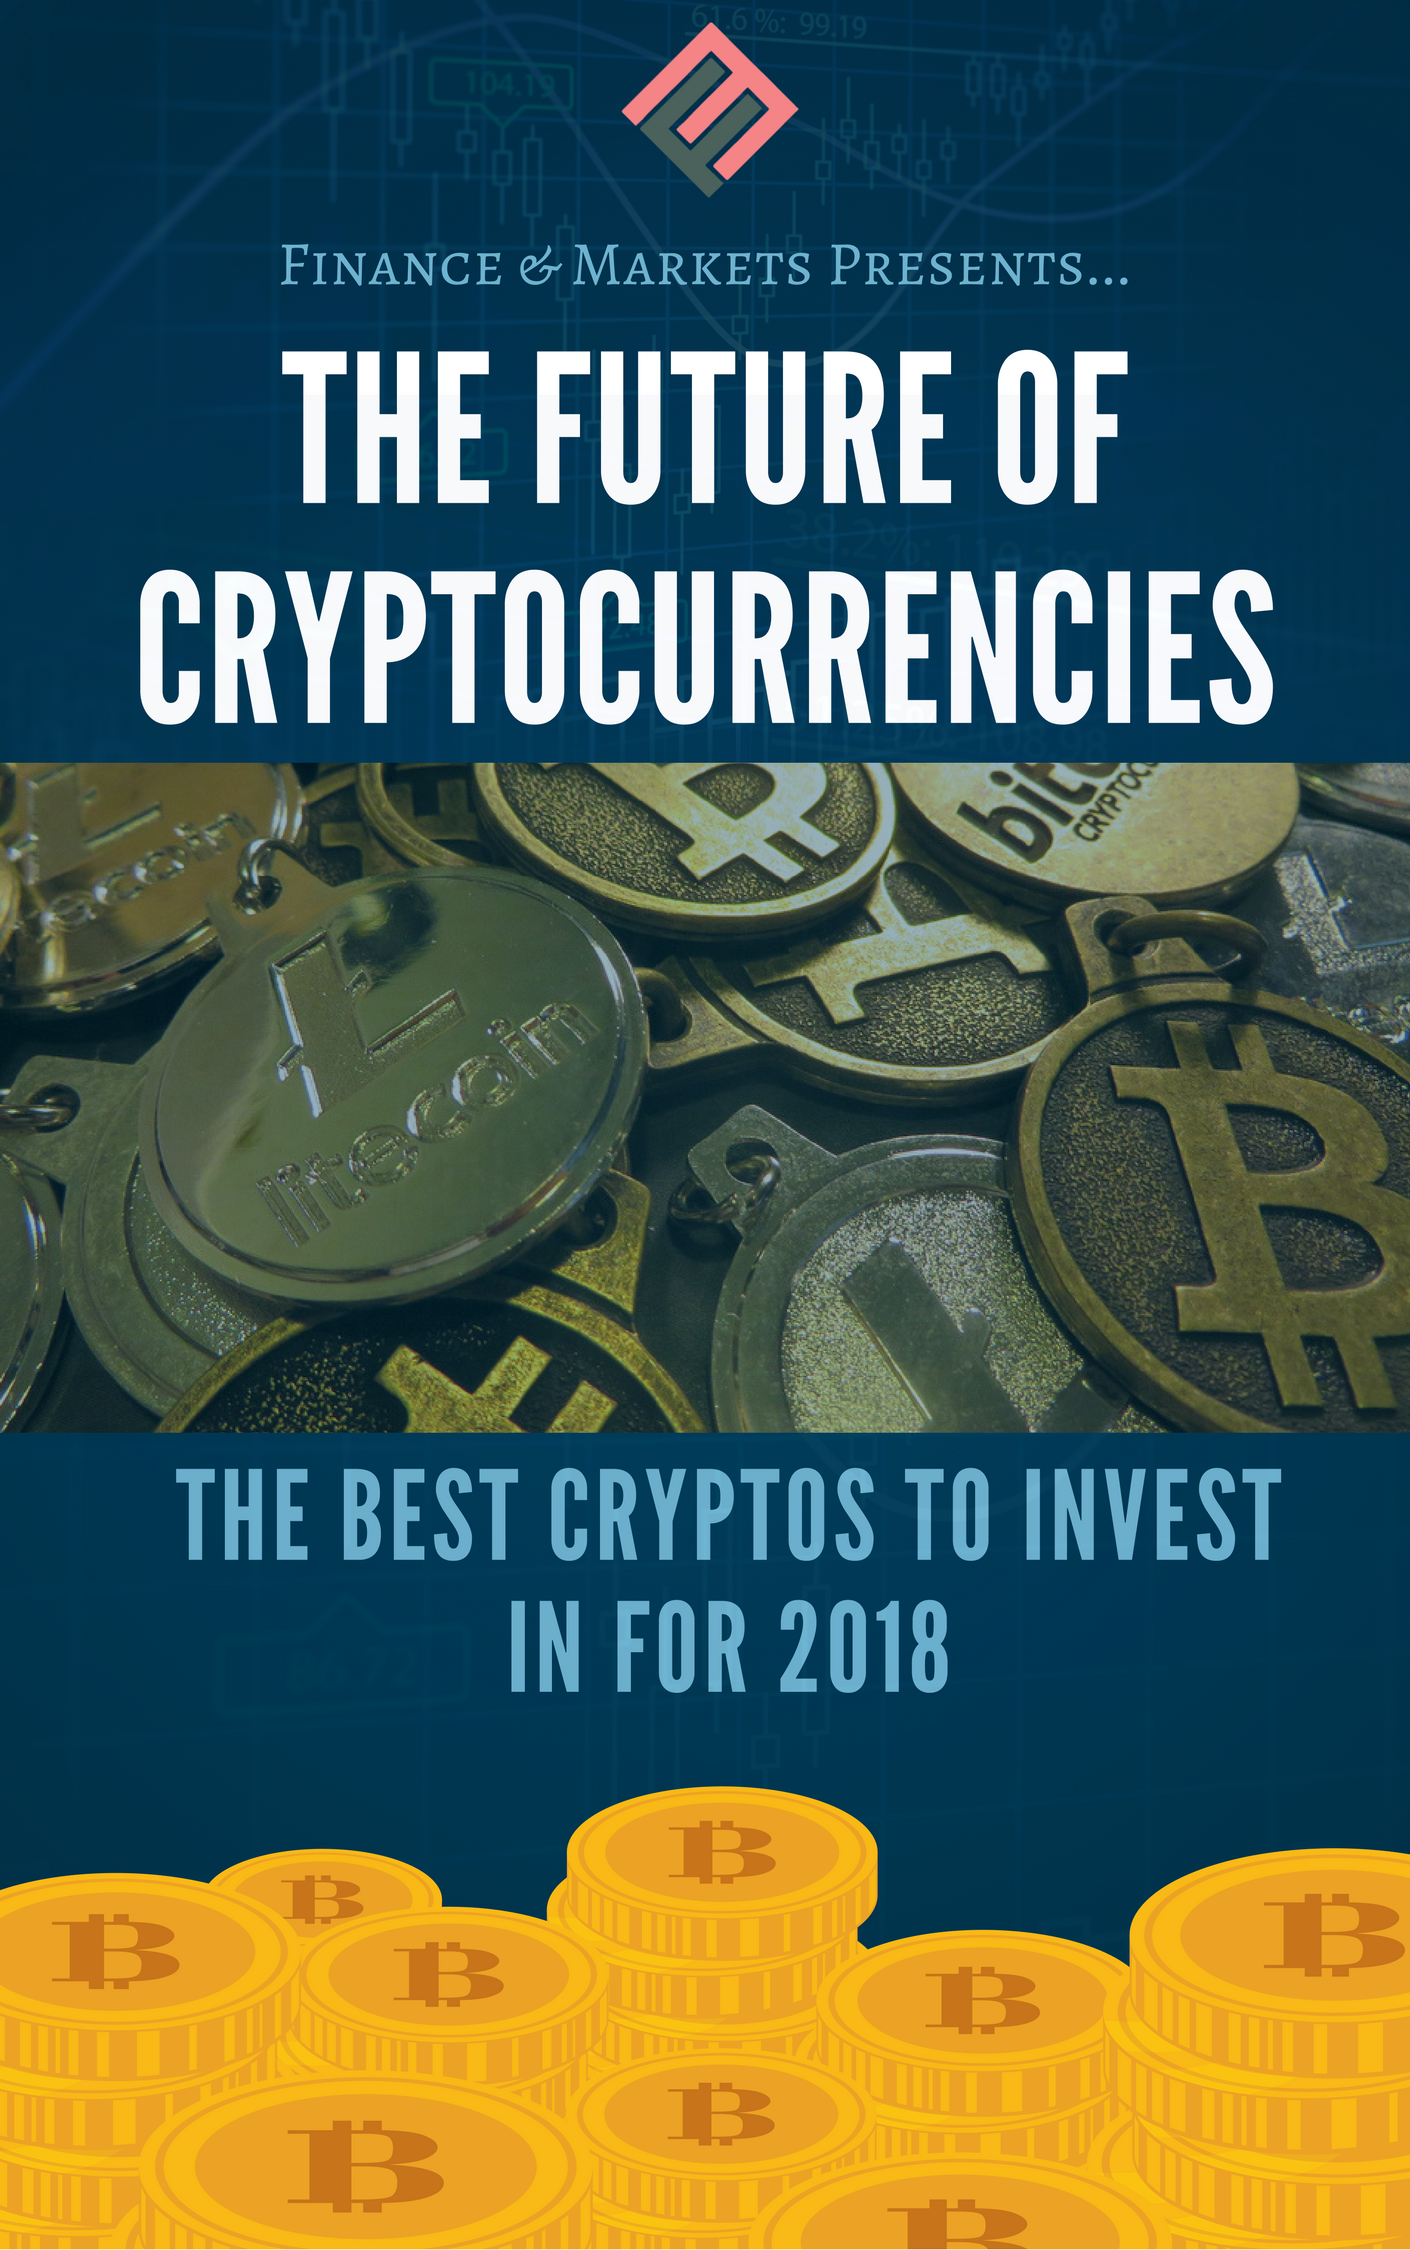 The Best Cryptocurrencies To Invest In 2018